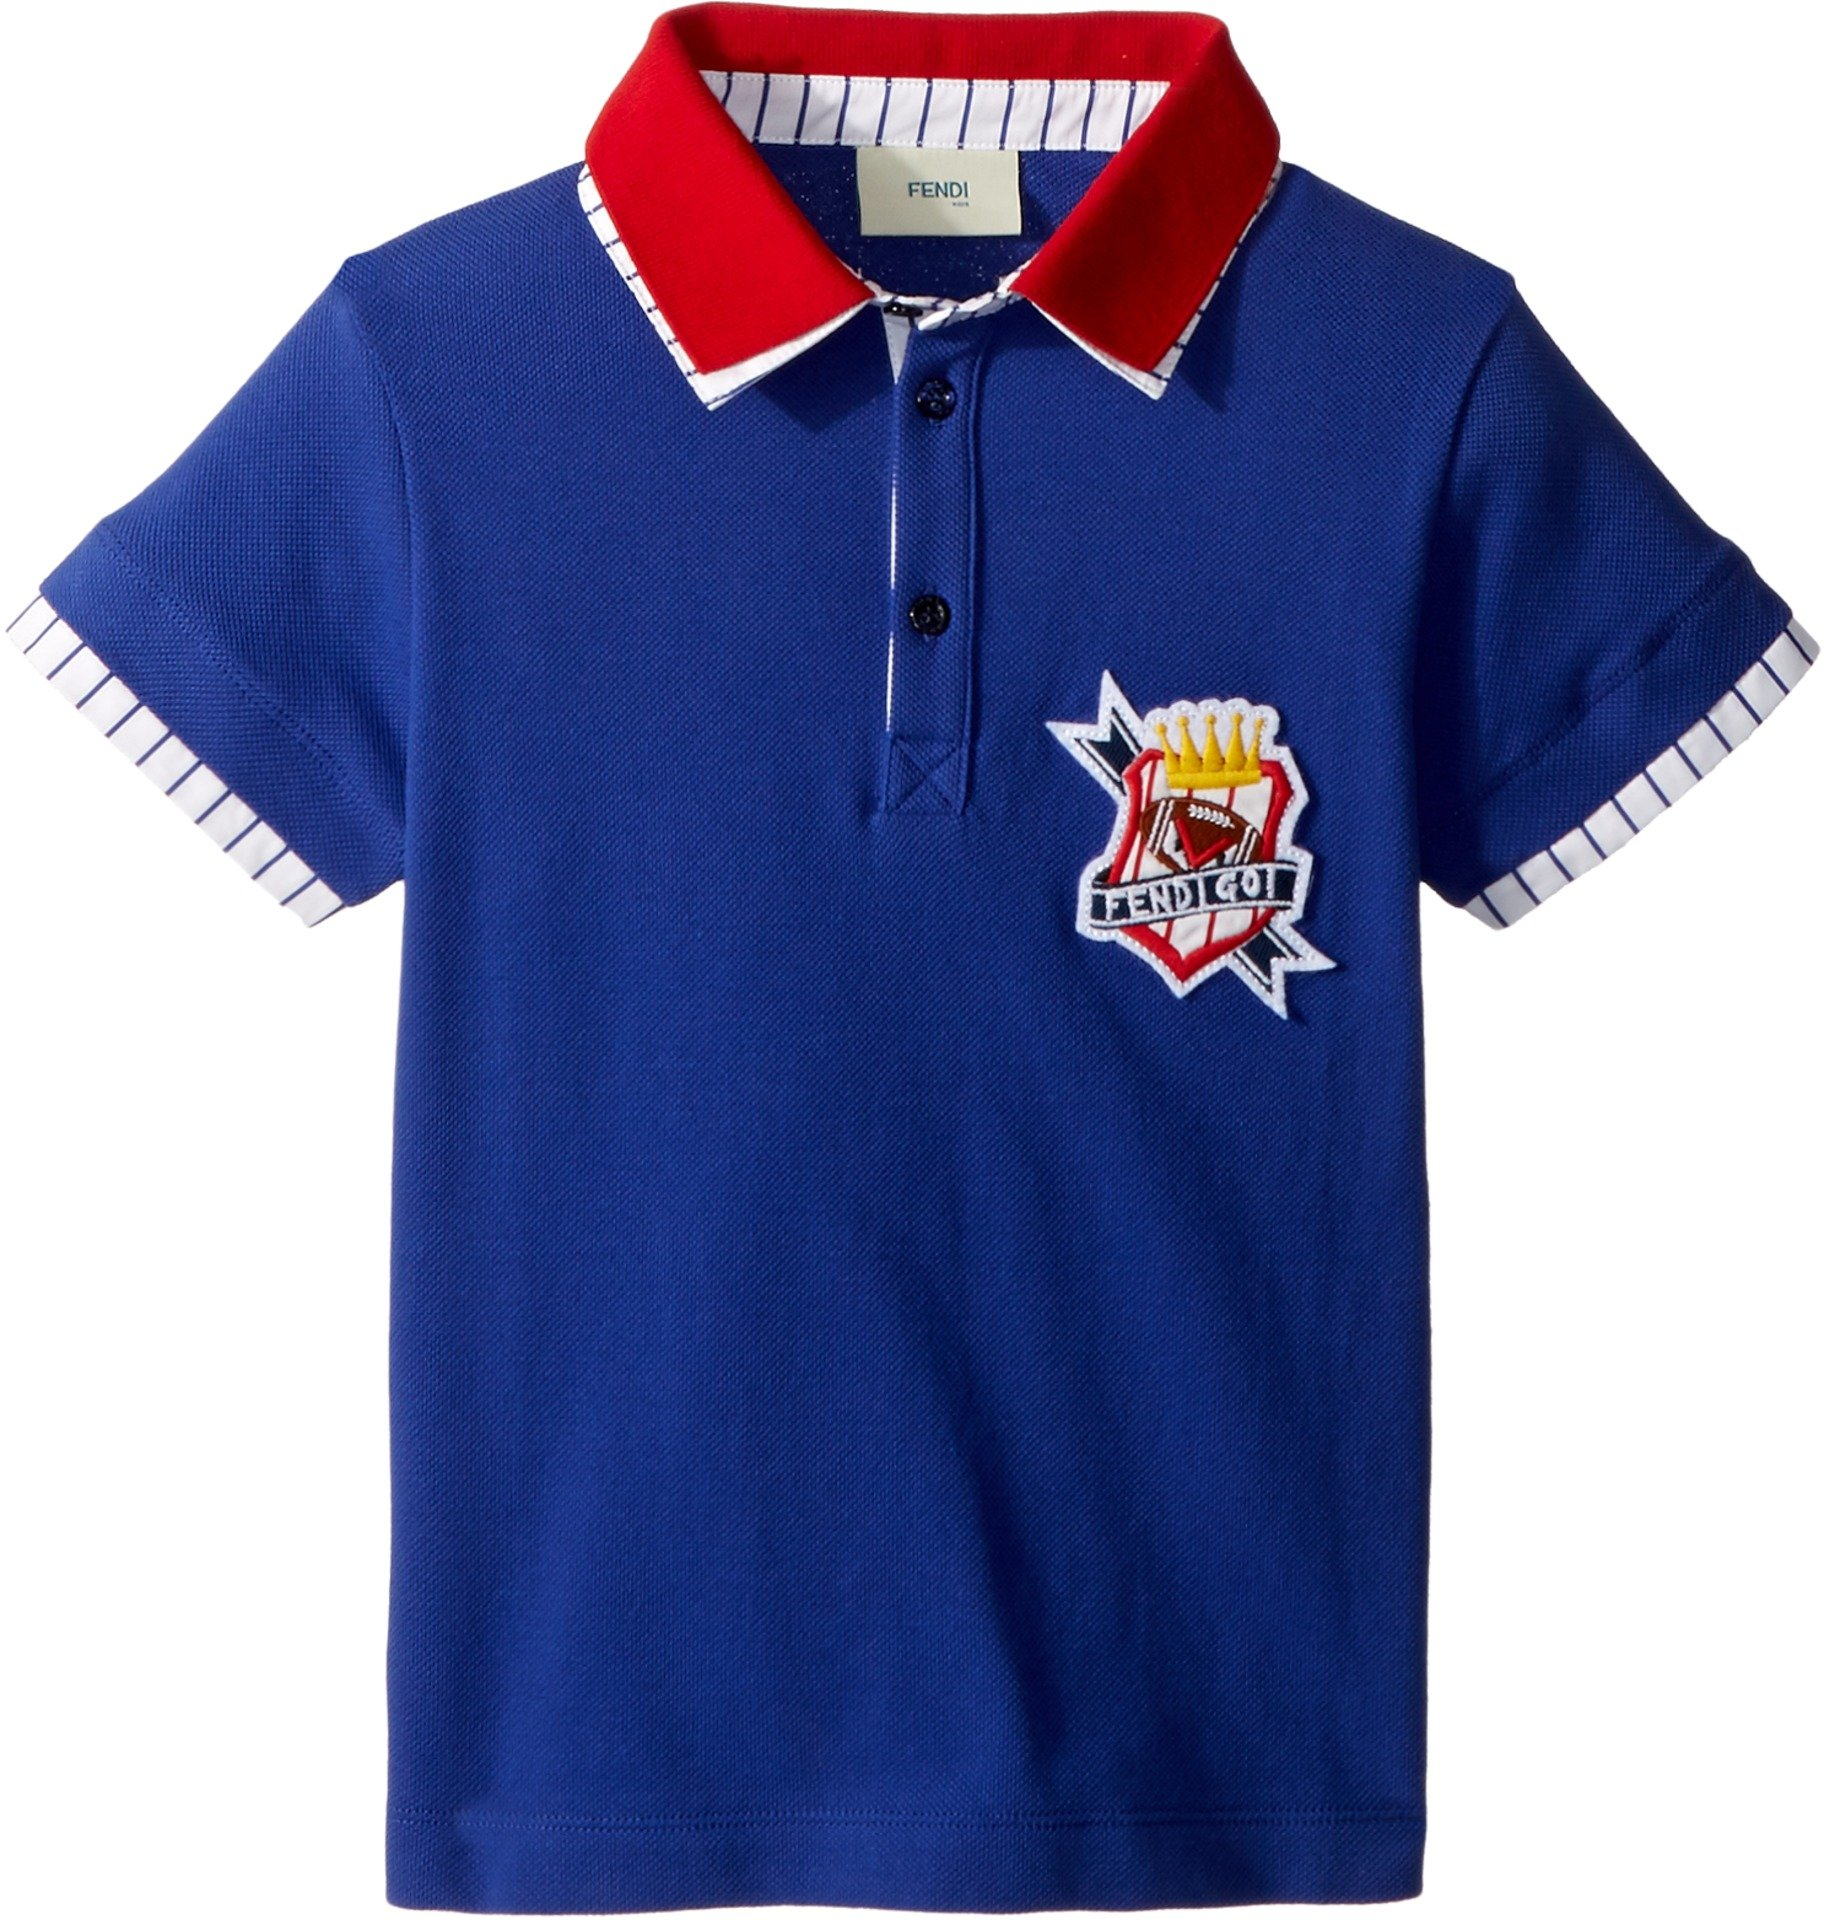 Fendi Kids Baby Boy's Short Sleeve Polo T-Shirt w/Football Design on Front (Toddler) Royal Blue 4 Years